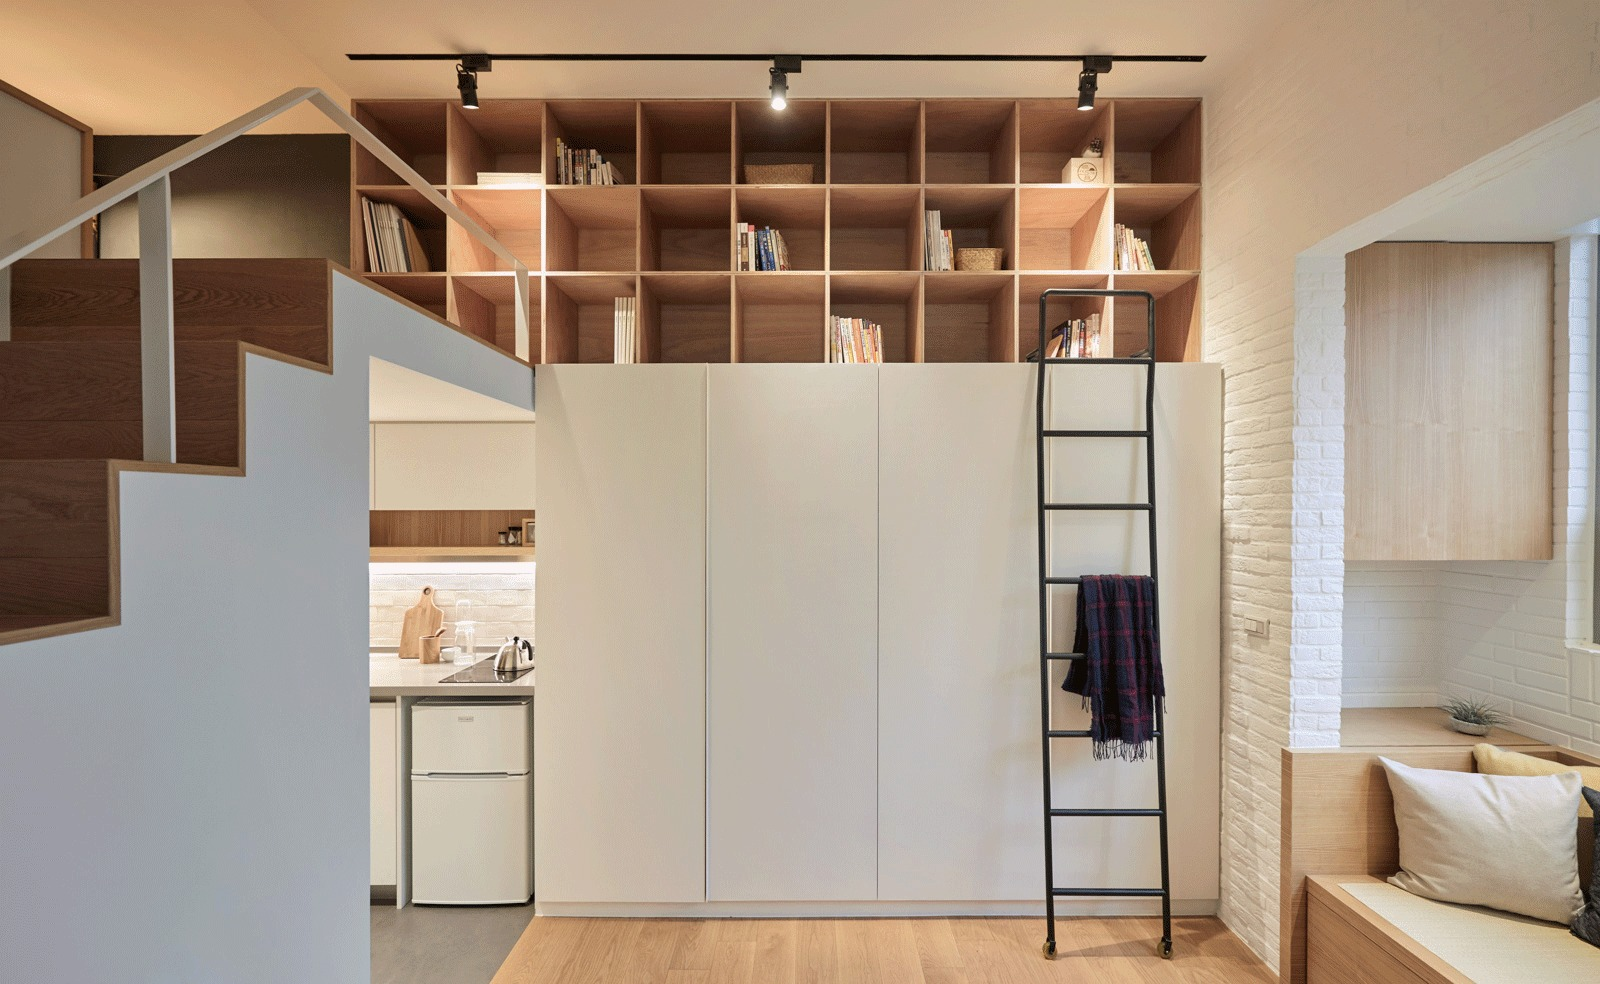 22m2 Apartment in Taiwan / A Little Design